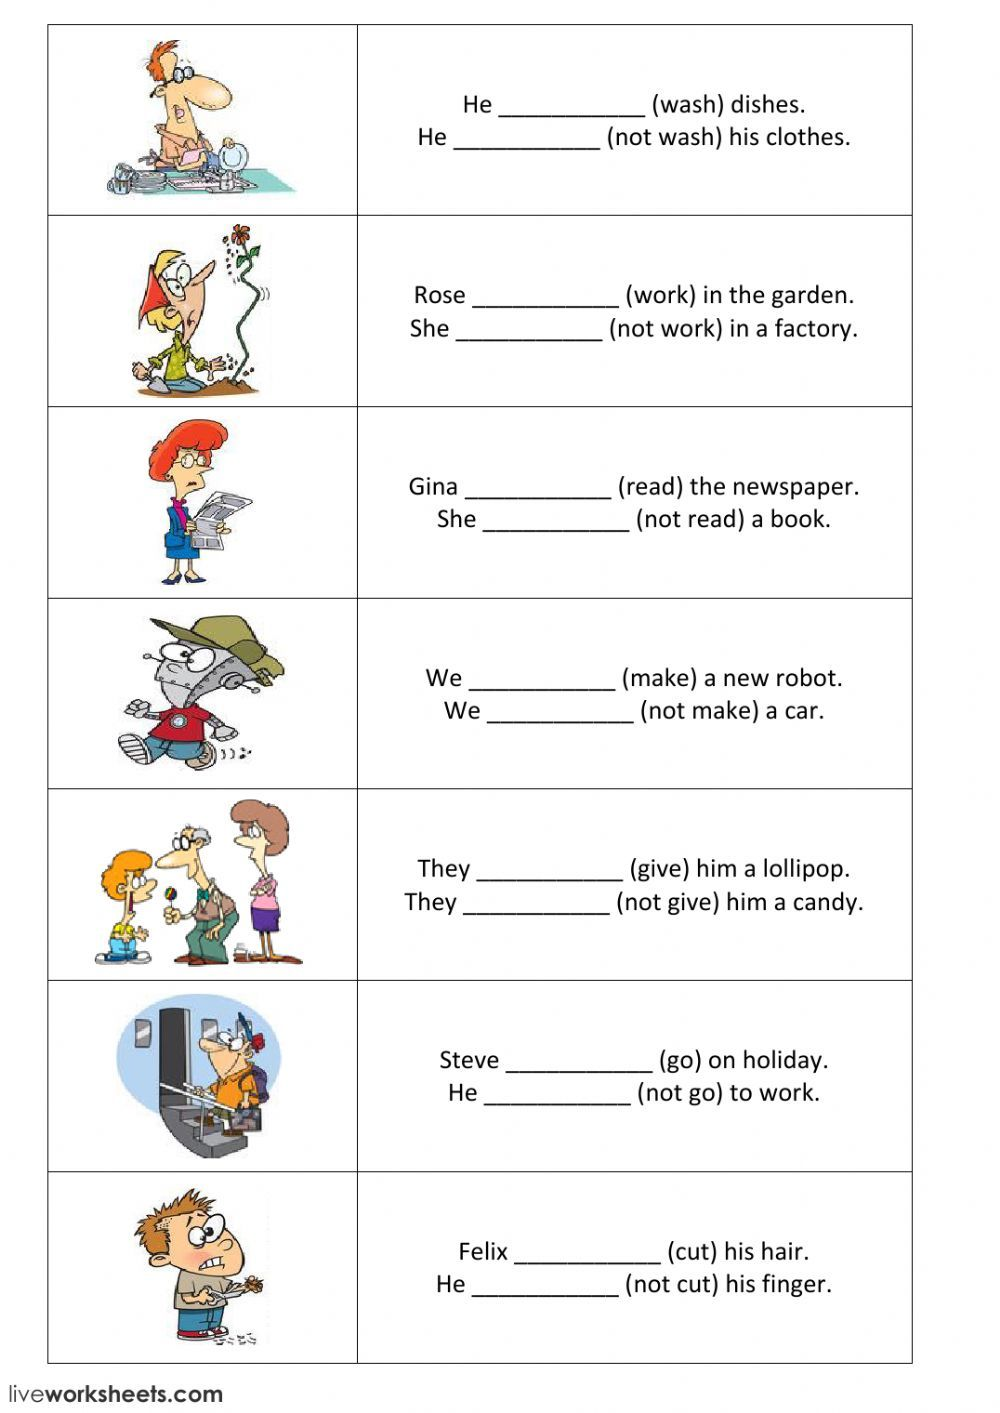 Modal verbs interactive and downloadable worksheet. You ...